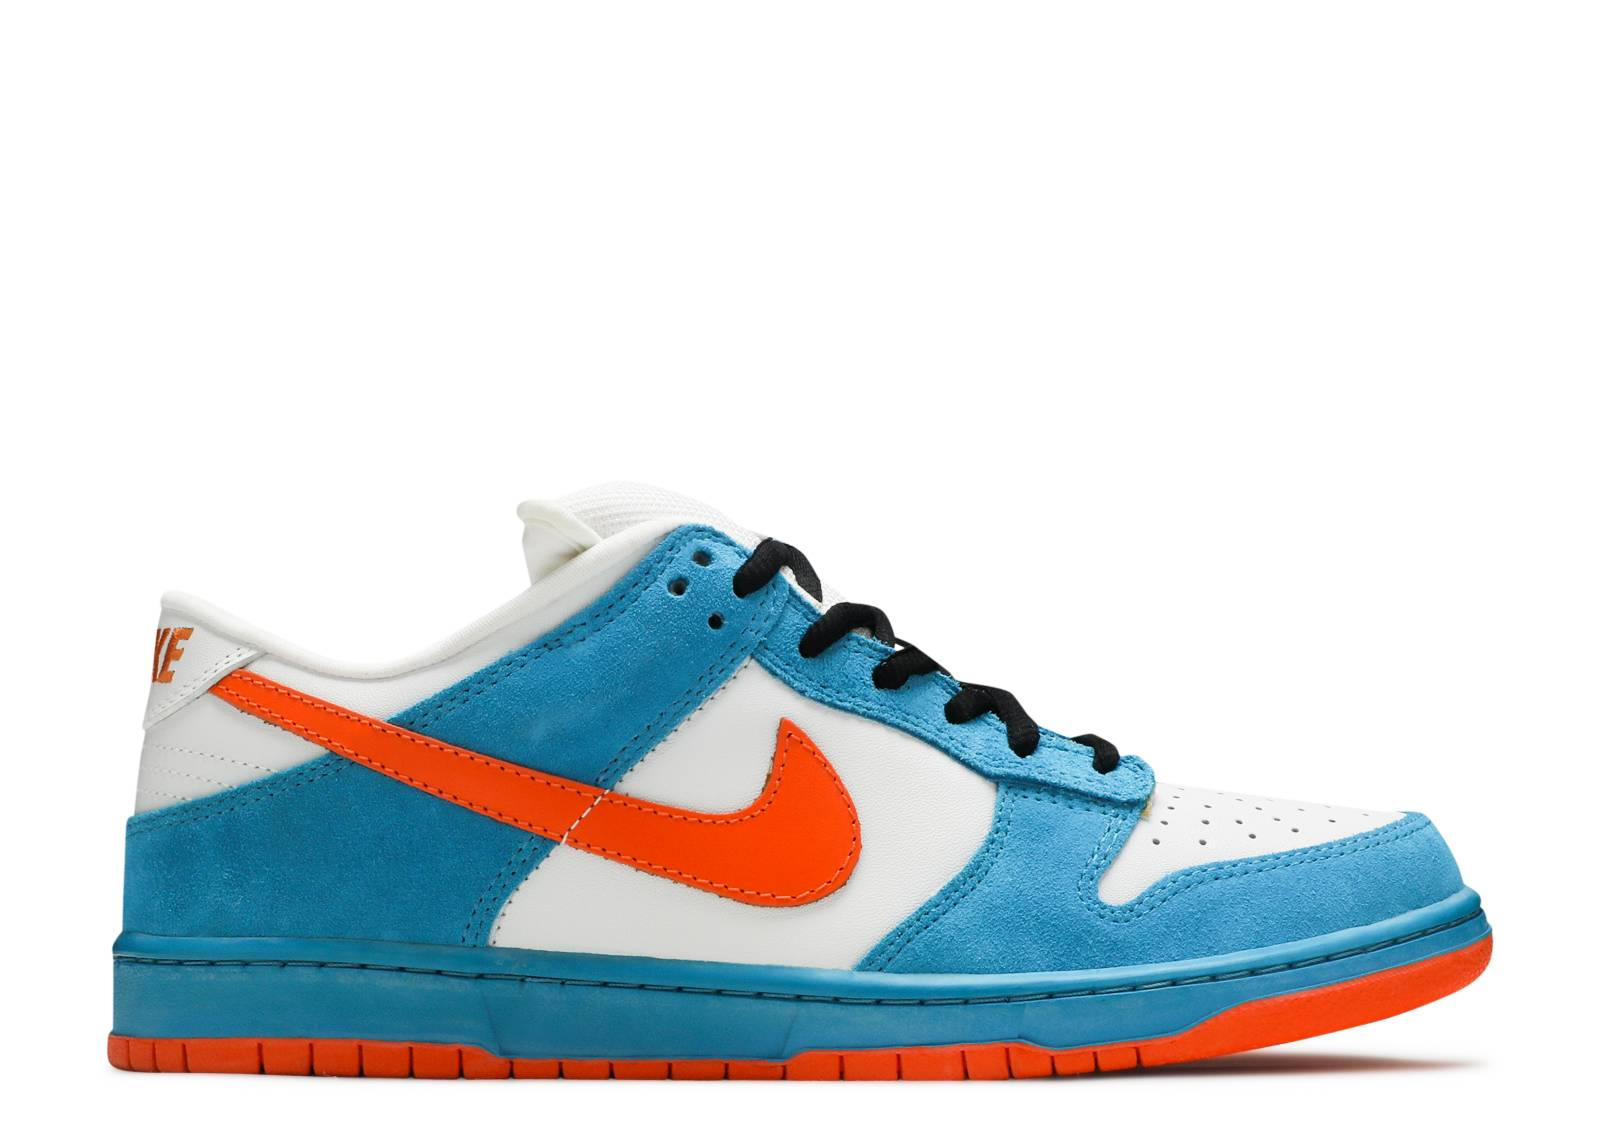 aqua and orange nike dunks Nike Dunk High ...